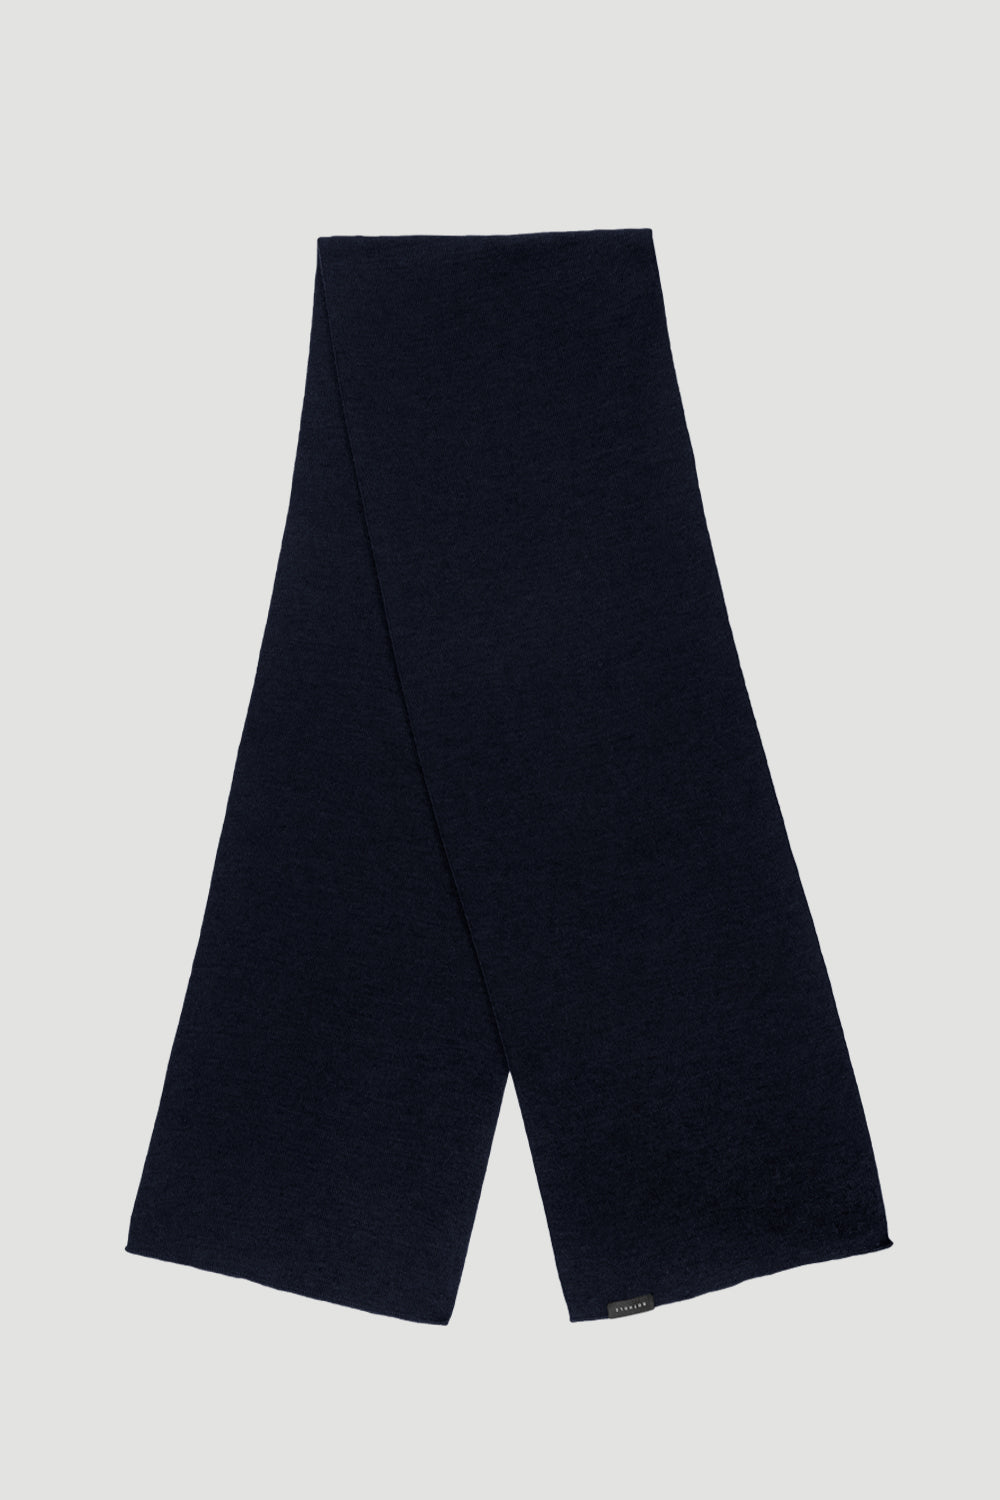 'Basic' Merino Scarf Navy Blue Schal - Rotholz